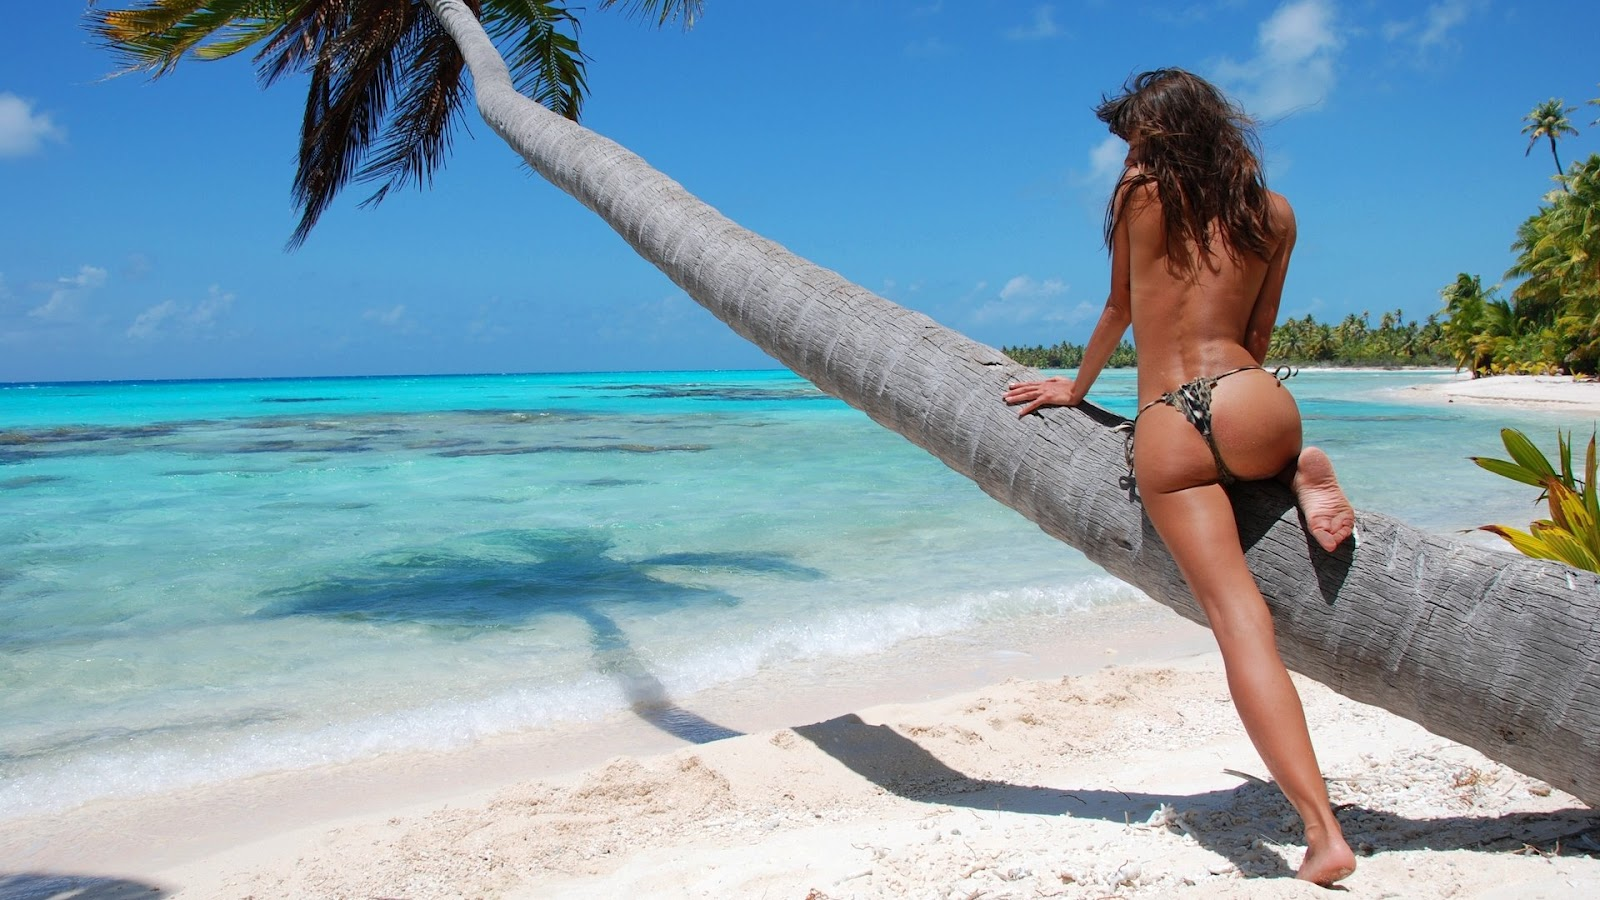 Girl Most Beautiful Beaches In The World